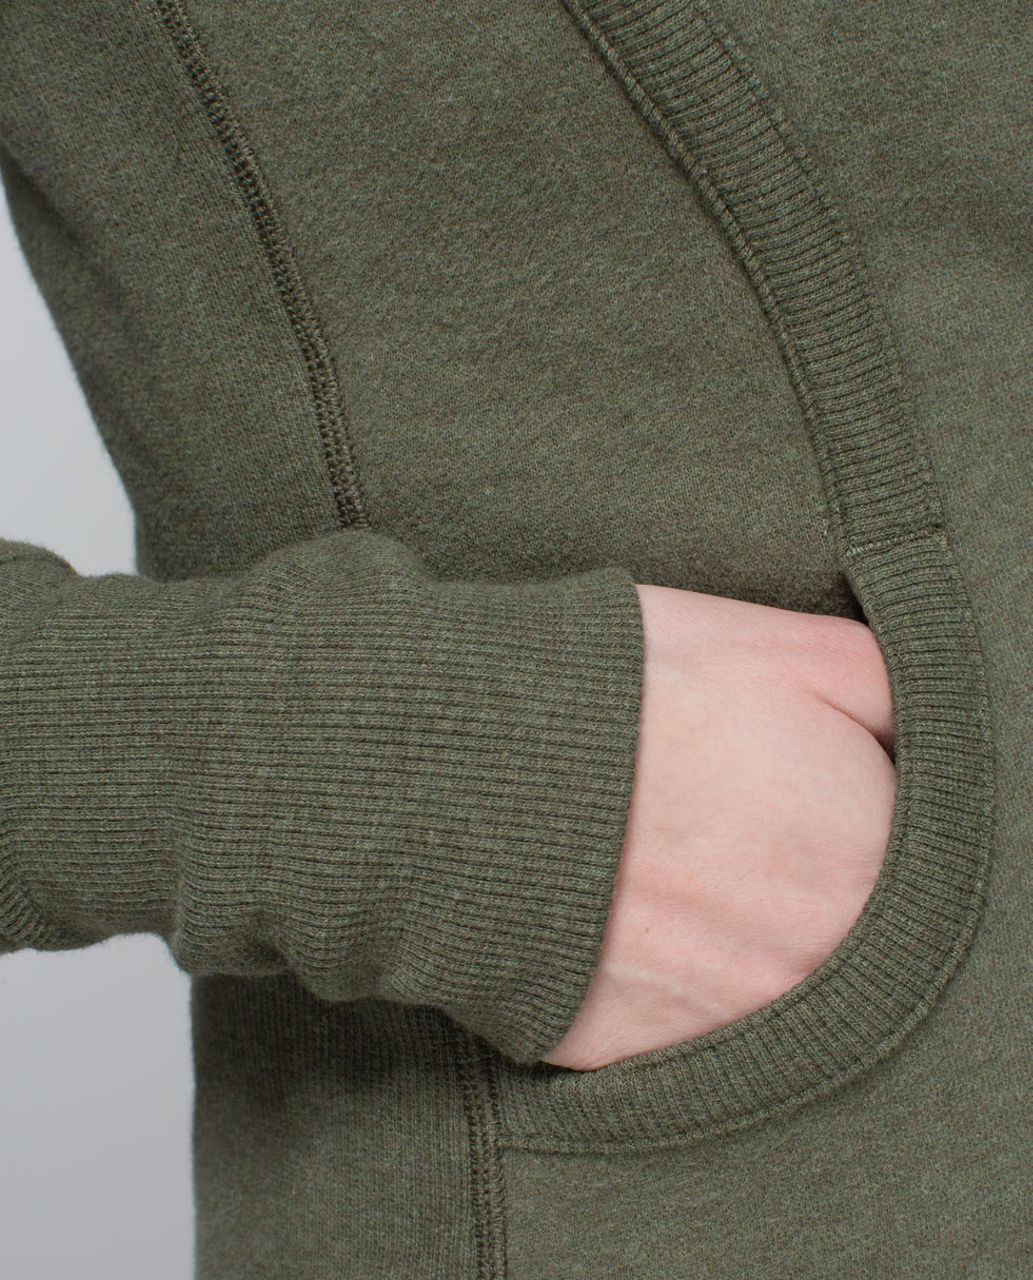 Lululemon Scuba Hoodie II - Heathered Fatigue Green / Fatigue Green